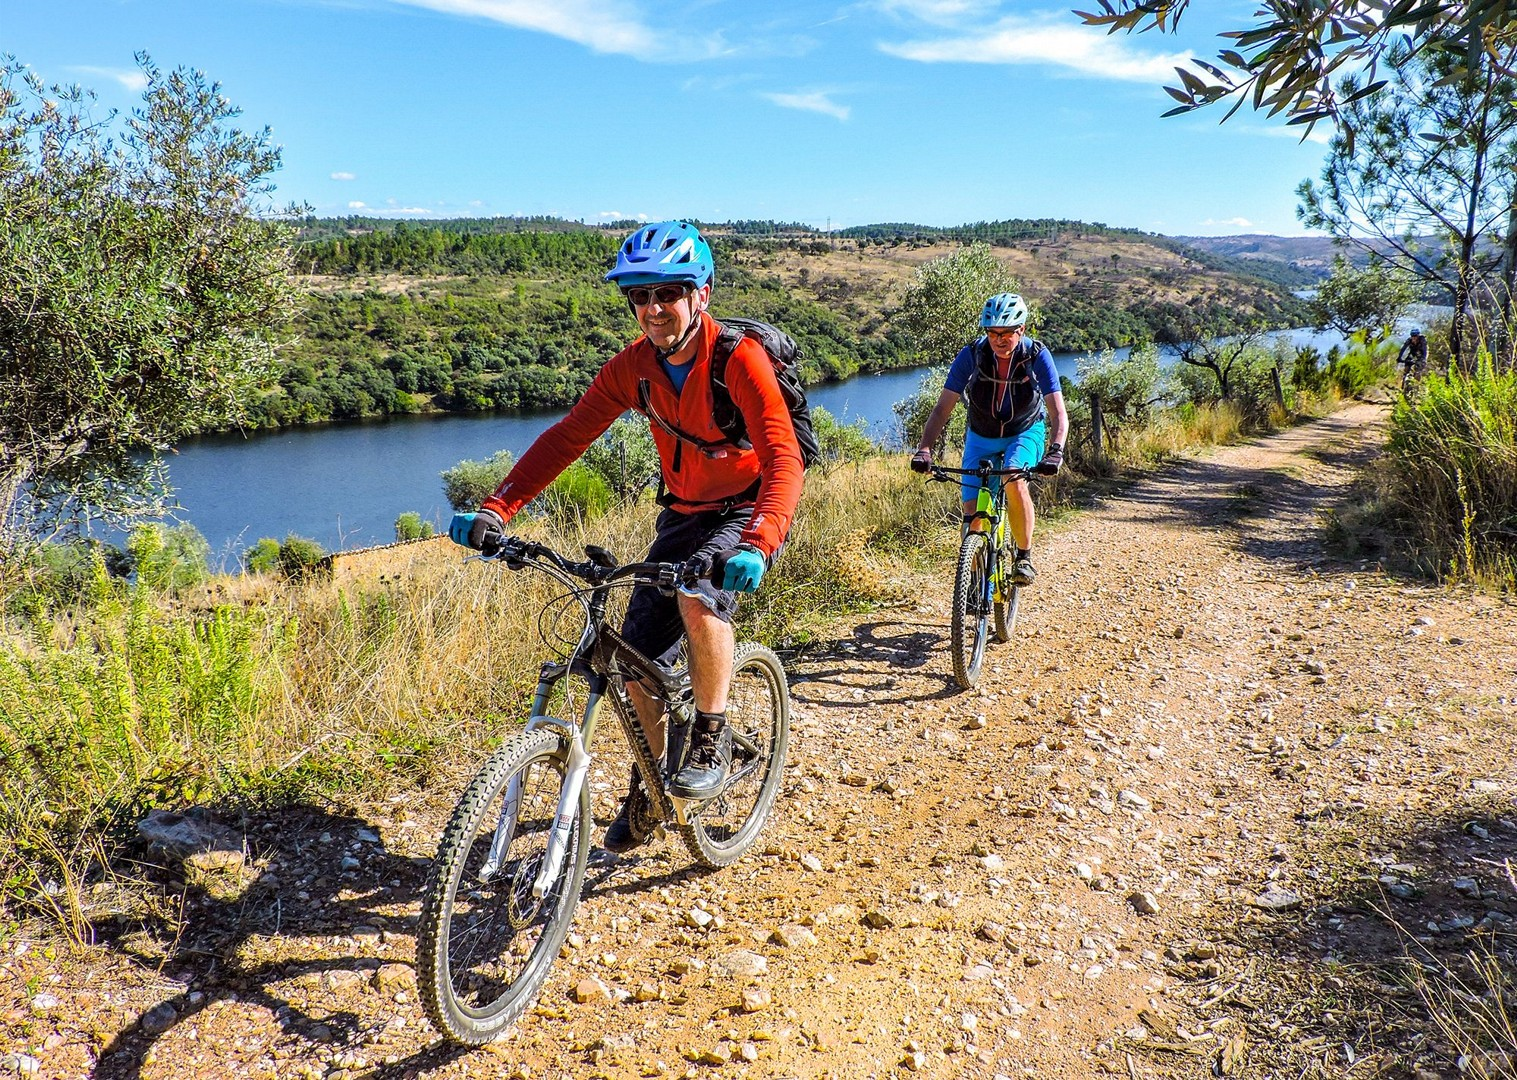 portugal-roman-trails-tour-saddle-skedaddle-cycling-holiday.jpg - Portugal - Roman Trails - Guided Mountain Bike Holiday - Mountain Biking